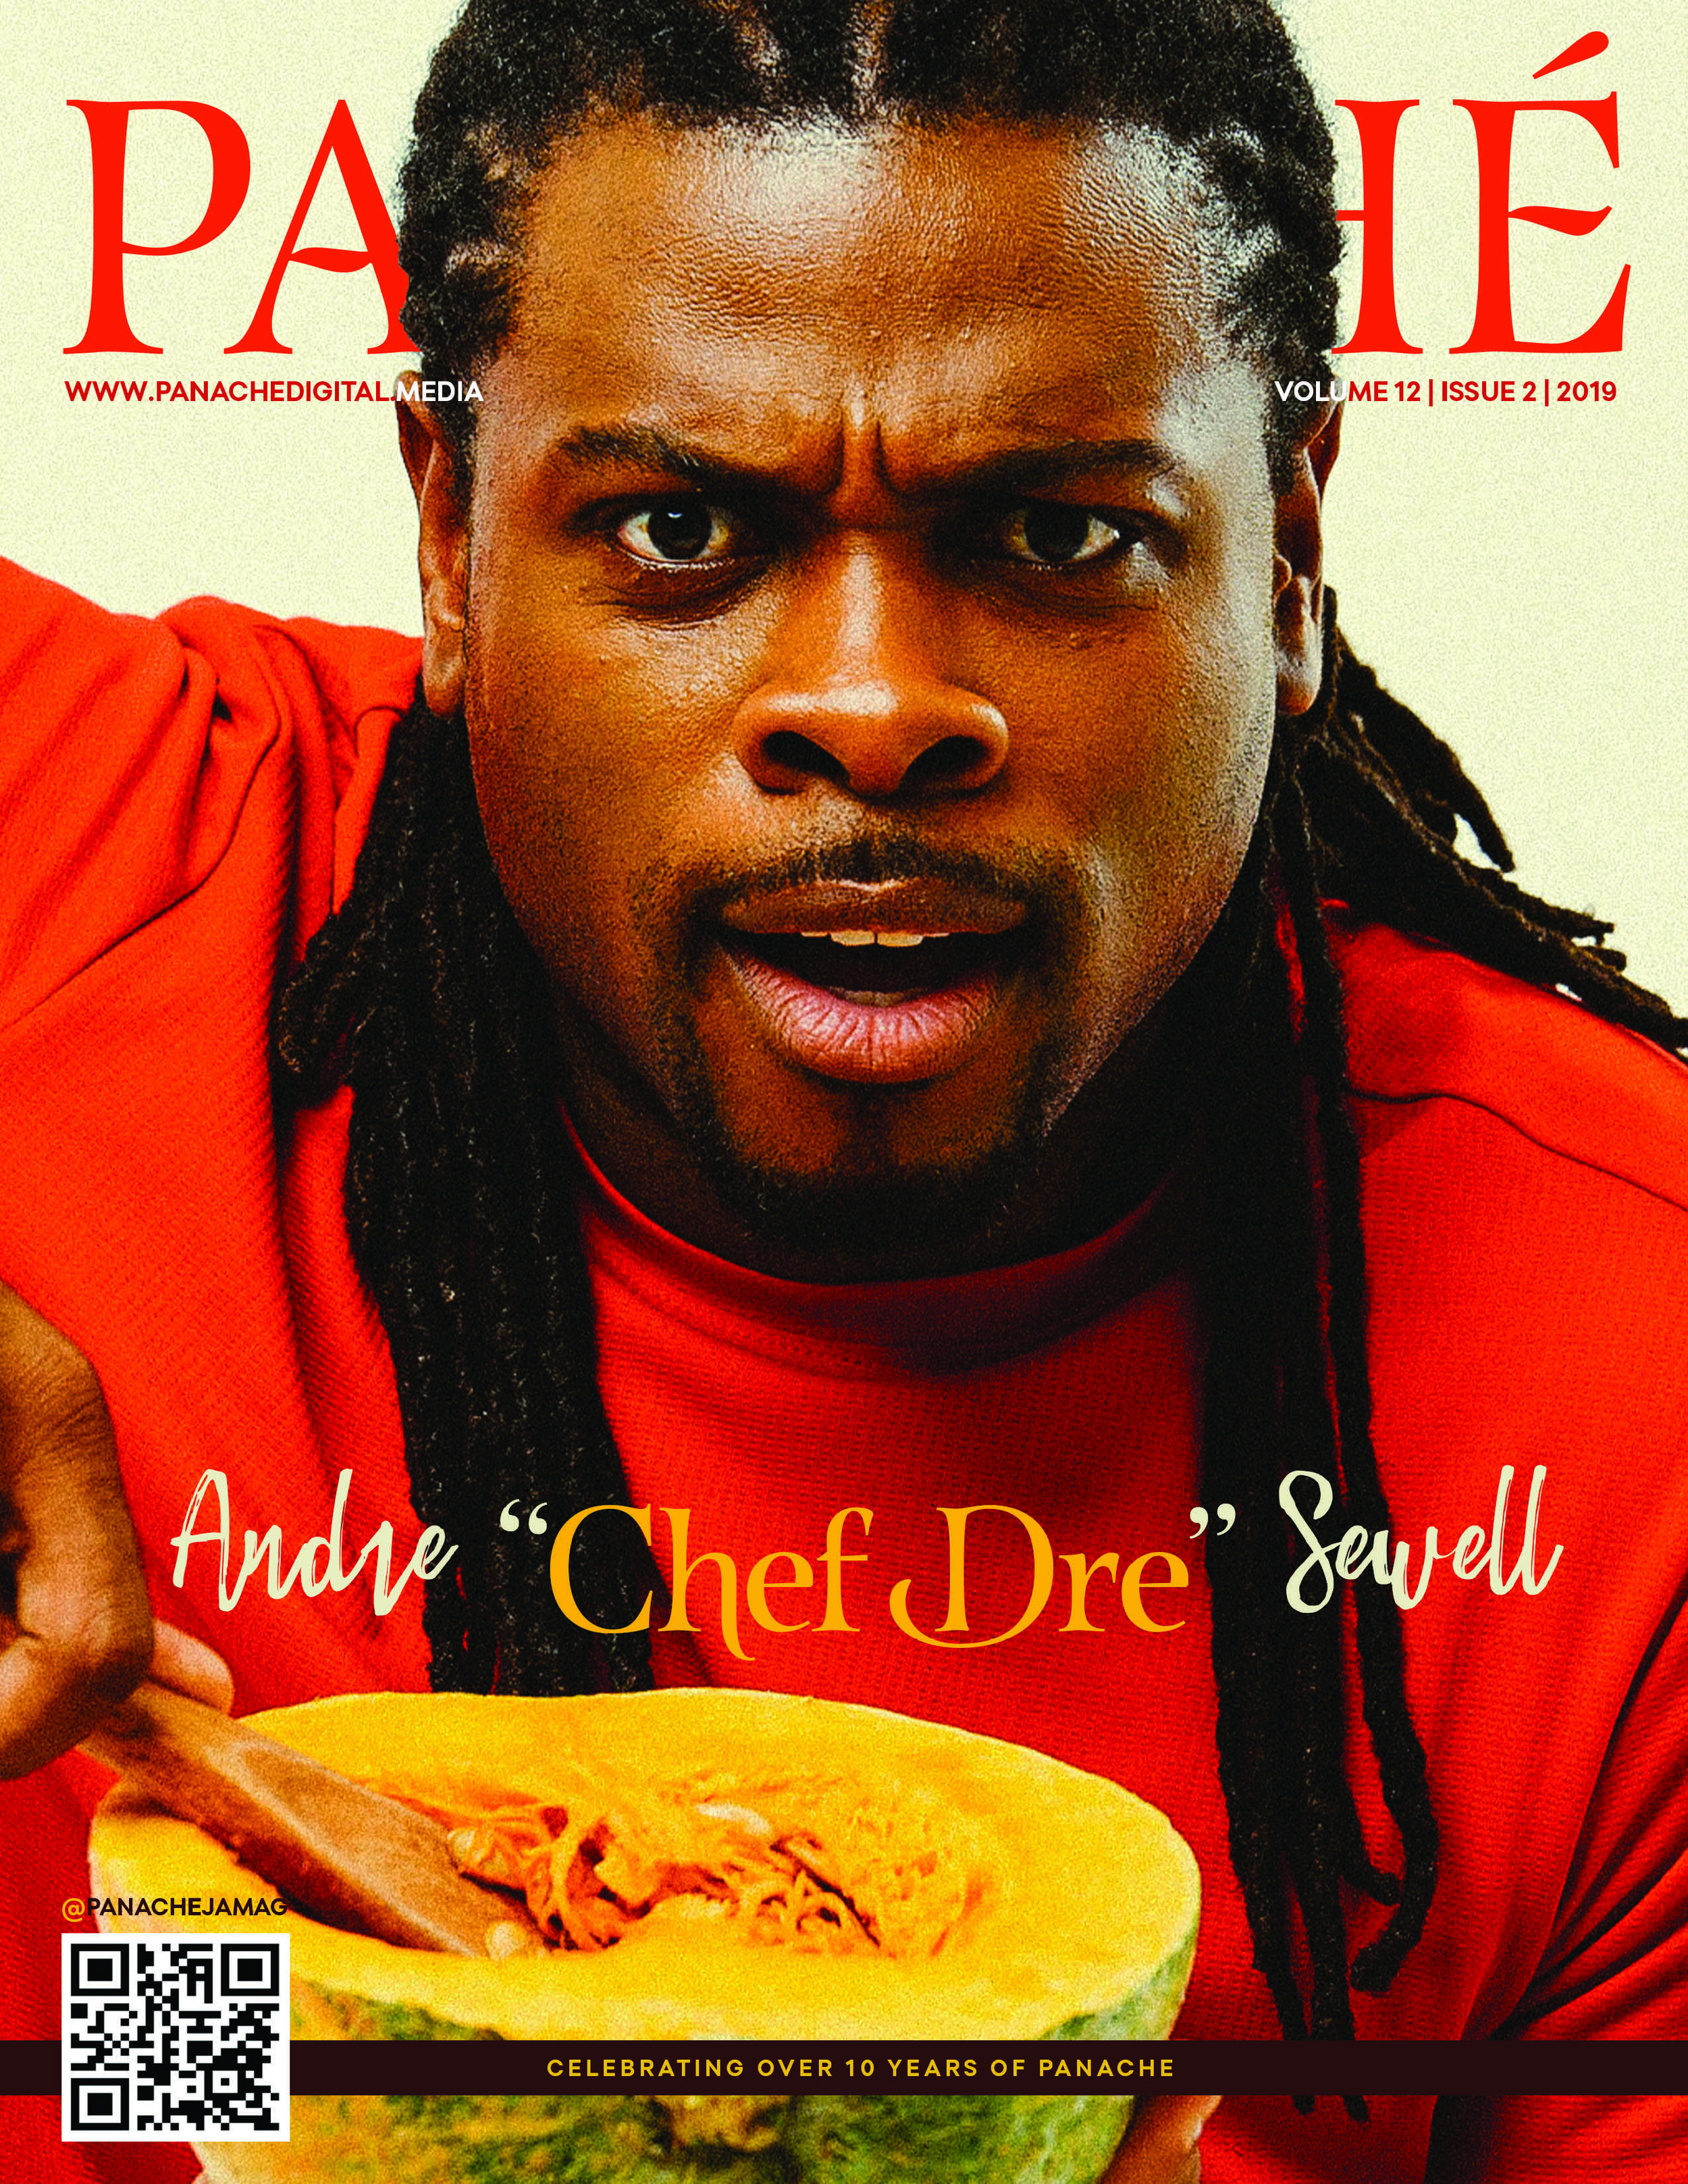 PANACHE Issue 2 2019 - Enjoy our exclusive interviews with Chef Dre and Danusia Francis…. so much more inside! Dive in and enjoy!